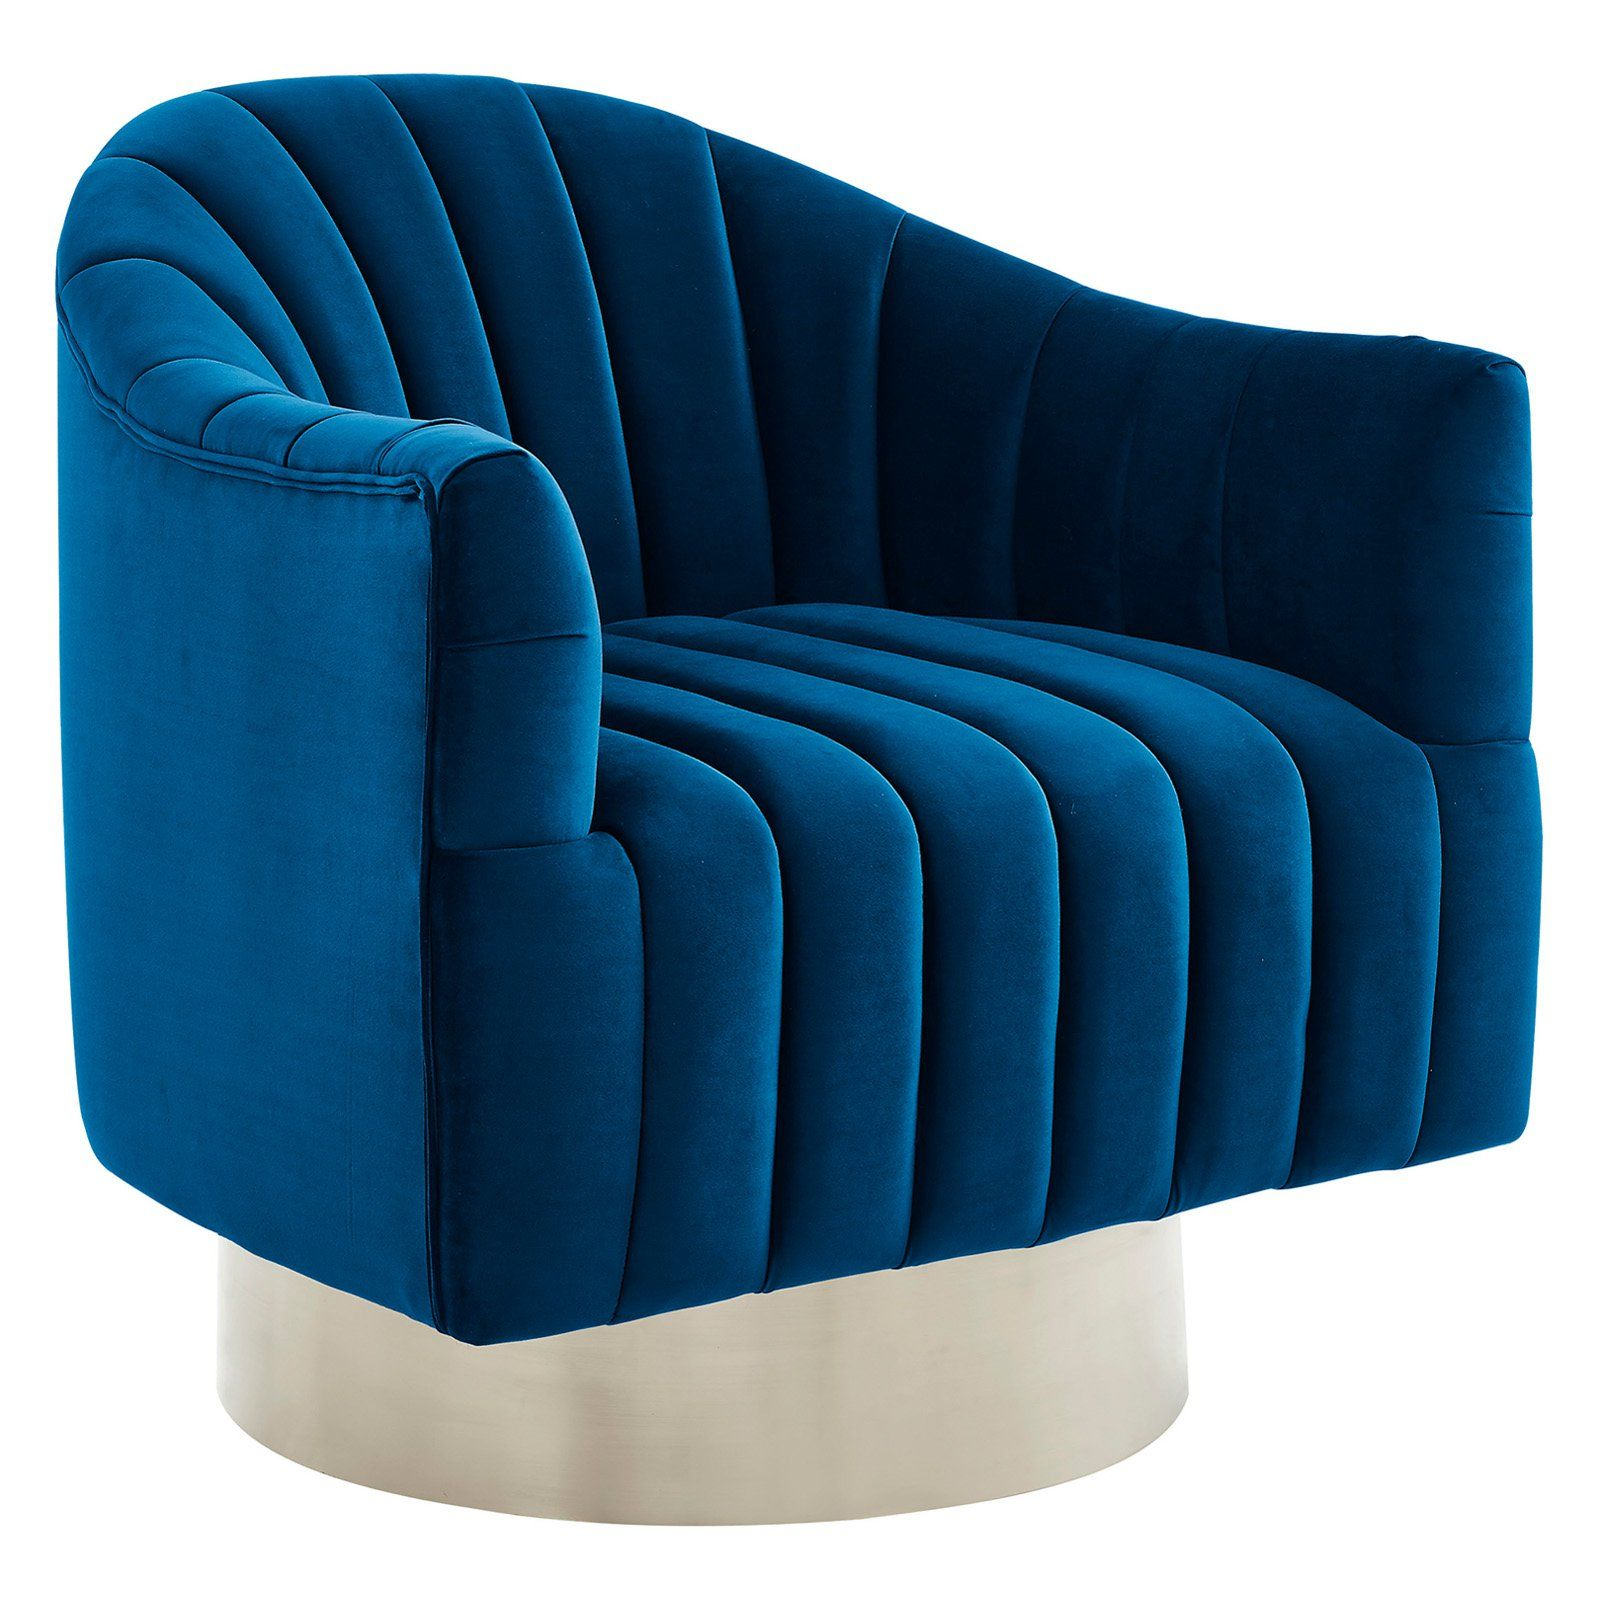 Best Nspire Swivel Velvet Accent Chair Blue Silver Accent 400 x 300